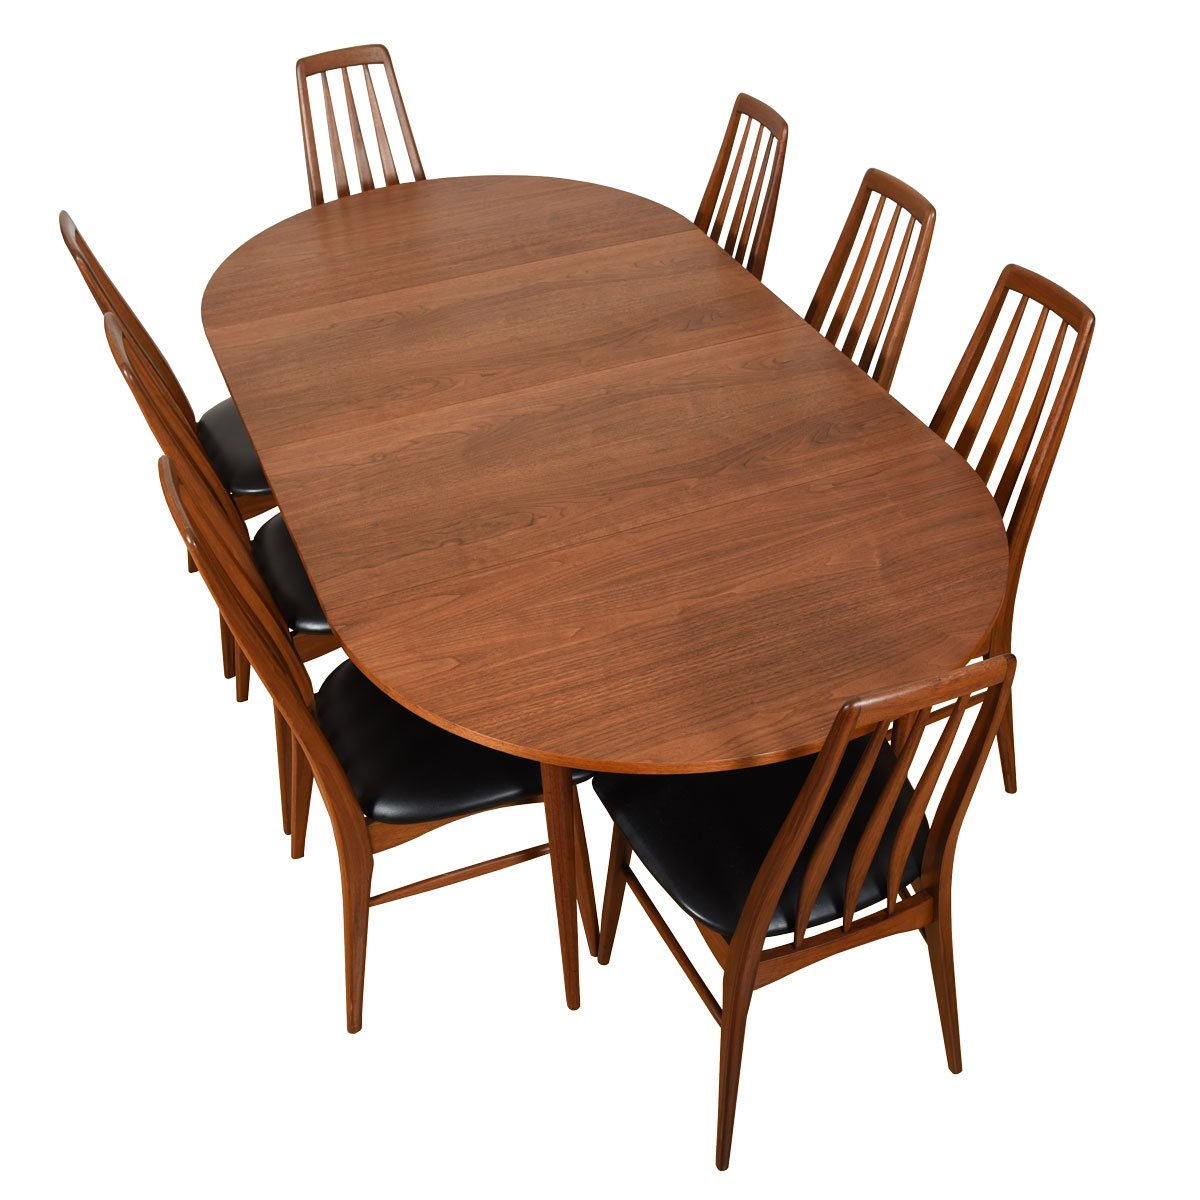 Brown Saltman Petite Round-to-Oval Walnut Dining Table w/ 2 Leaves